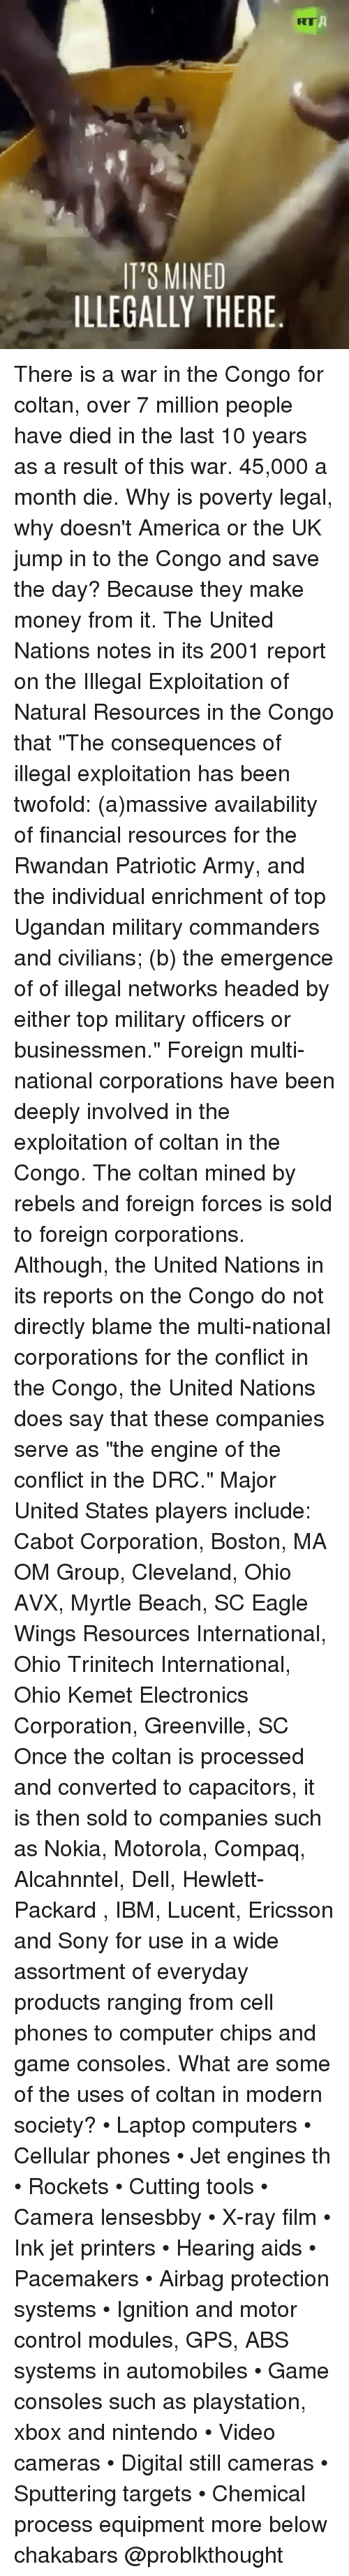 """airbag: KT  IT'S MINED  ILLEGALLY THERE. There is a war in the Congo for coltan, over 7 million people have died in the last 10 years as a result of this war. 45,000 a month die. Why is poverty legal, why doesn't America or the UK jump in to the Congo and save the day? Because they make money from it. The United Nations notes in its 2001 report on the Illegal Exploitation of Natural Resources in the Congo that """"The consequences of illegal exploitation has been twofold: (a)massive availability of financial resources for the Rwandan Patriotic Army, and the individual enrichment of top Ugandan military commanders and civilians; (b) the emergence of of illegal networks headed by either top military officers or businessmen."""" Foreign multi-national corporations have been deeply involved in the exploitation of coltan in the Congo. The coltan mined by rebels and foreign forces is sold to foreign corporations. Although, the United Nations in its reports on the Congo do not directly blame the multi-national corporations for the conflict in the Congo, the United Nations does say that these companies serve as """"the engine of the conflict in the DRC."""" Major United States players include: Cabot Corporation, Boston, MA OM Group, Cleveland, Ohio AVX, Myrtle Beach, SC Eagle Wings Resources International, Ohio Trinitech International, Ohio Kemet Electronics Corporation, Greenville, SC Once the coltan is processed and converted to capacitors, it is then sold to companies such as Nokia, Motorola, Compaq, Alcahnntel, Dell, Hewlett-Packard , IBM, Lucent, Ericsson and Sony for use in a wide assortment of everyday products ranging from cell phones to computer chips and game consoles. What are some of the uses of coltan in modern society? • Laptop computers • Cellular phones • Jet engines th • Rockets • Cutting tools • Camera lensesbby • X-ray film • Ink jet printers • Hearing aids • Pacemakers • Airbag protection systems • Ignition and motor control modules, GPS, ABS systems in automobiles """